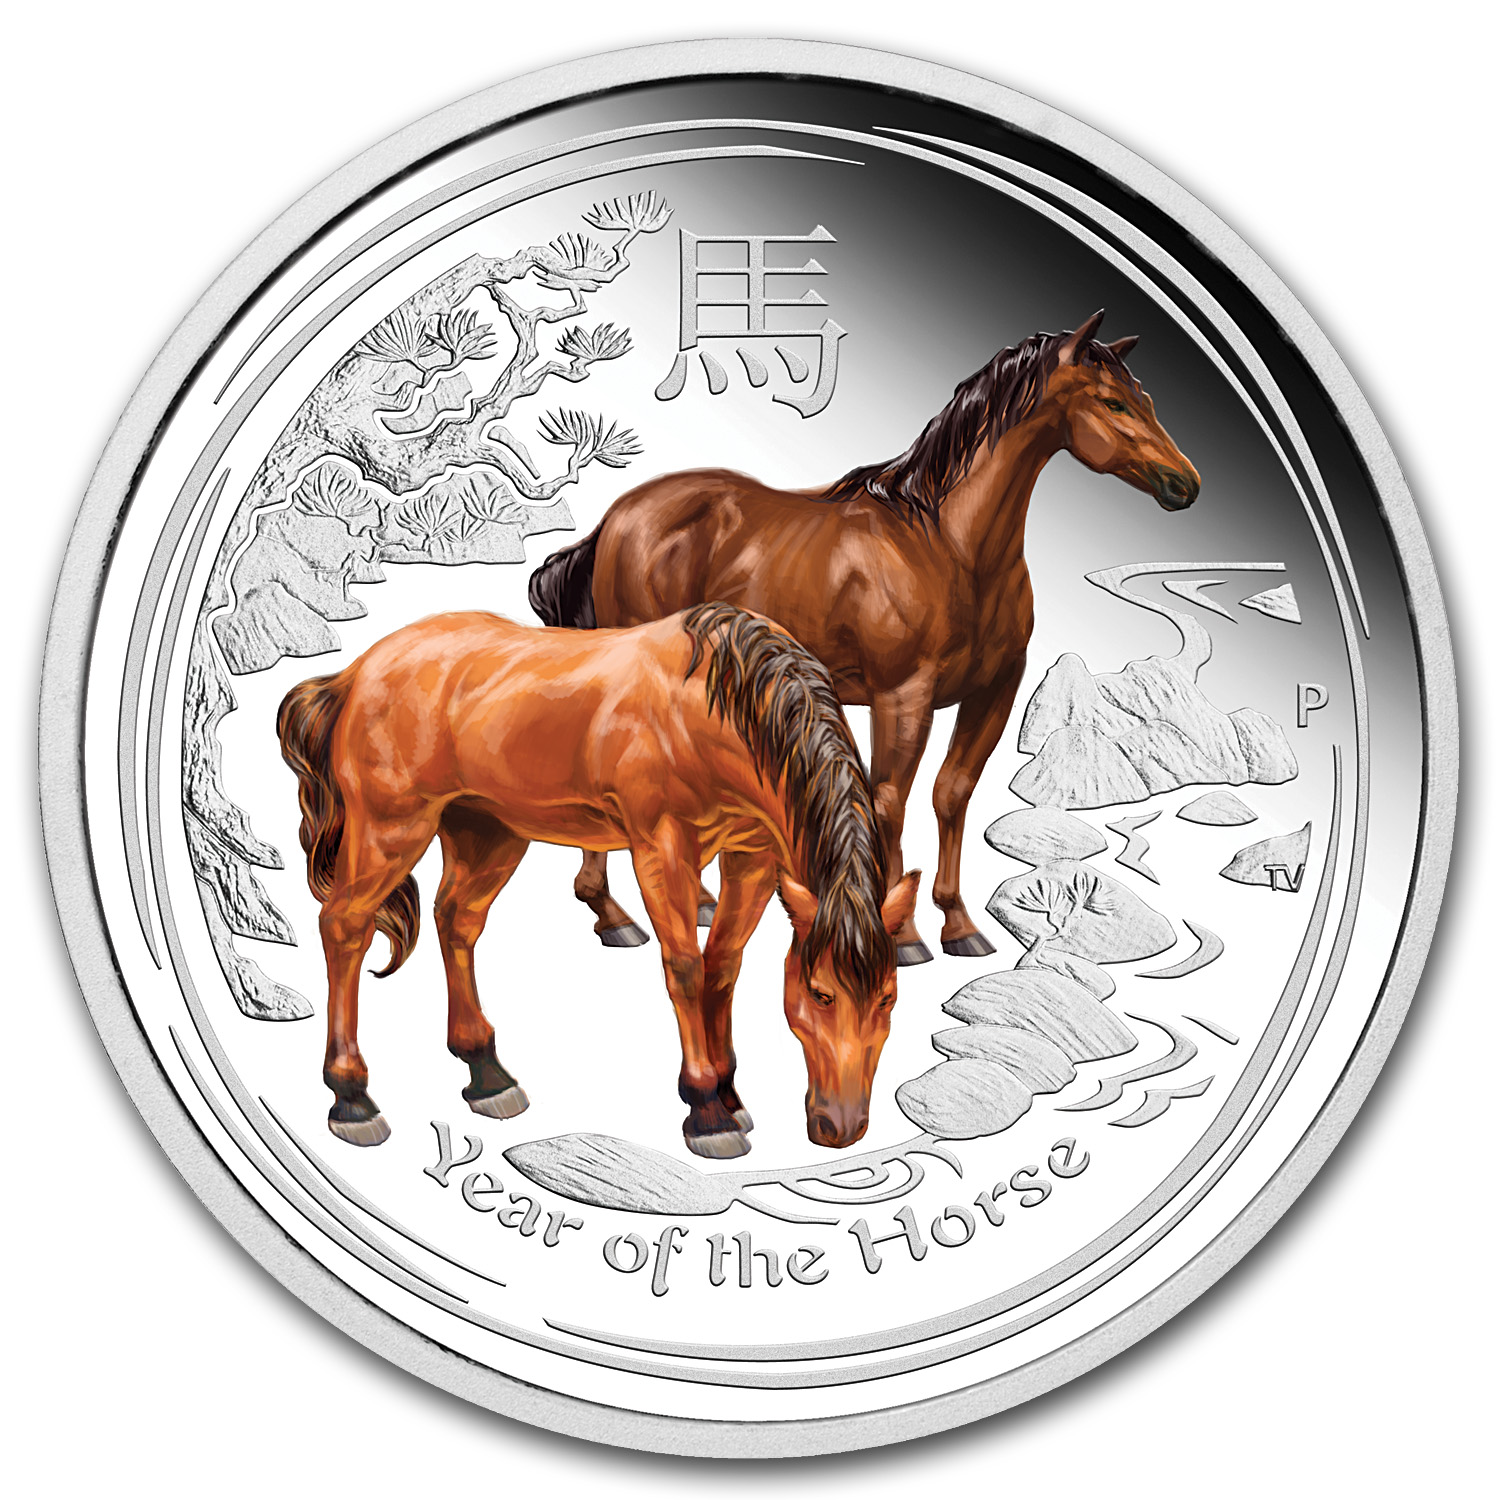 2014 Australia 1/2 oz Silver Lunar Horse Proof (Colorized)